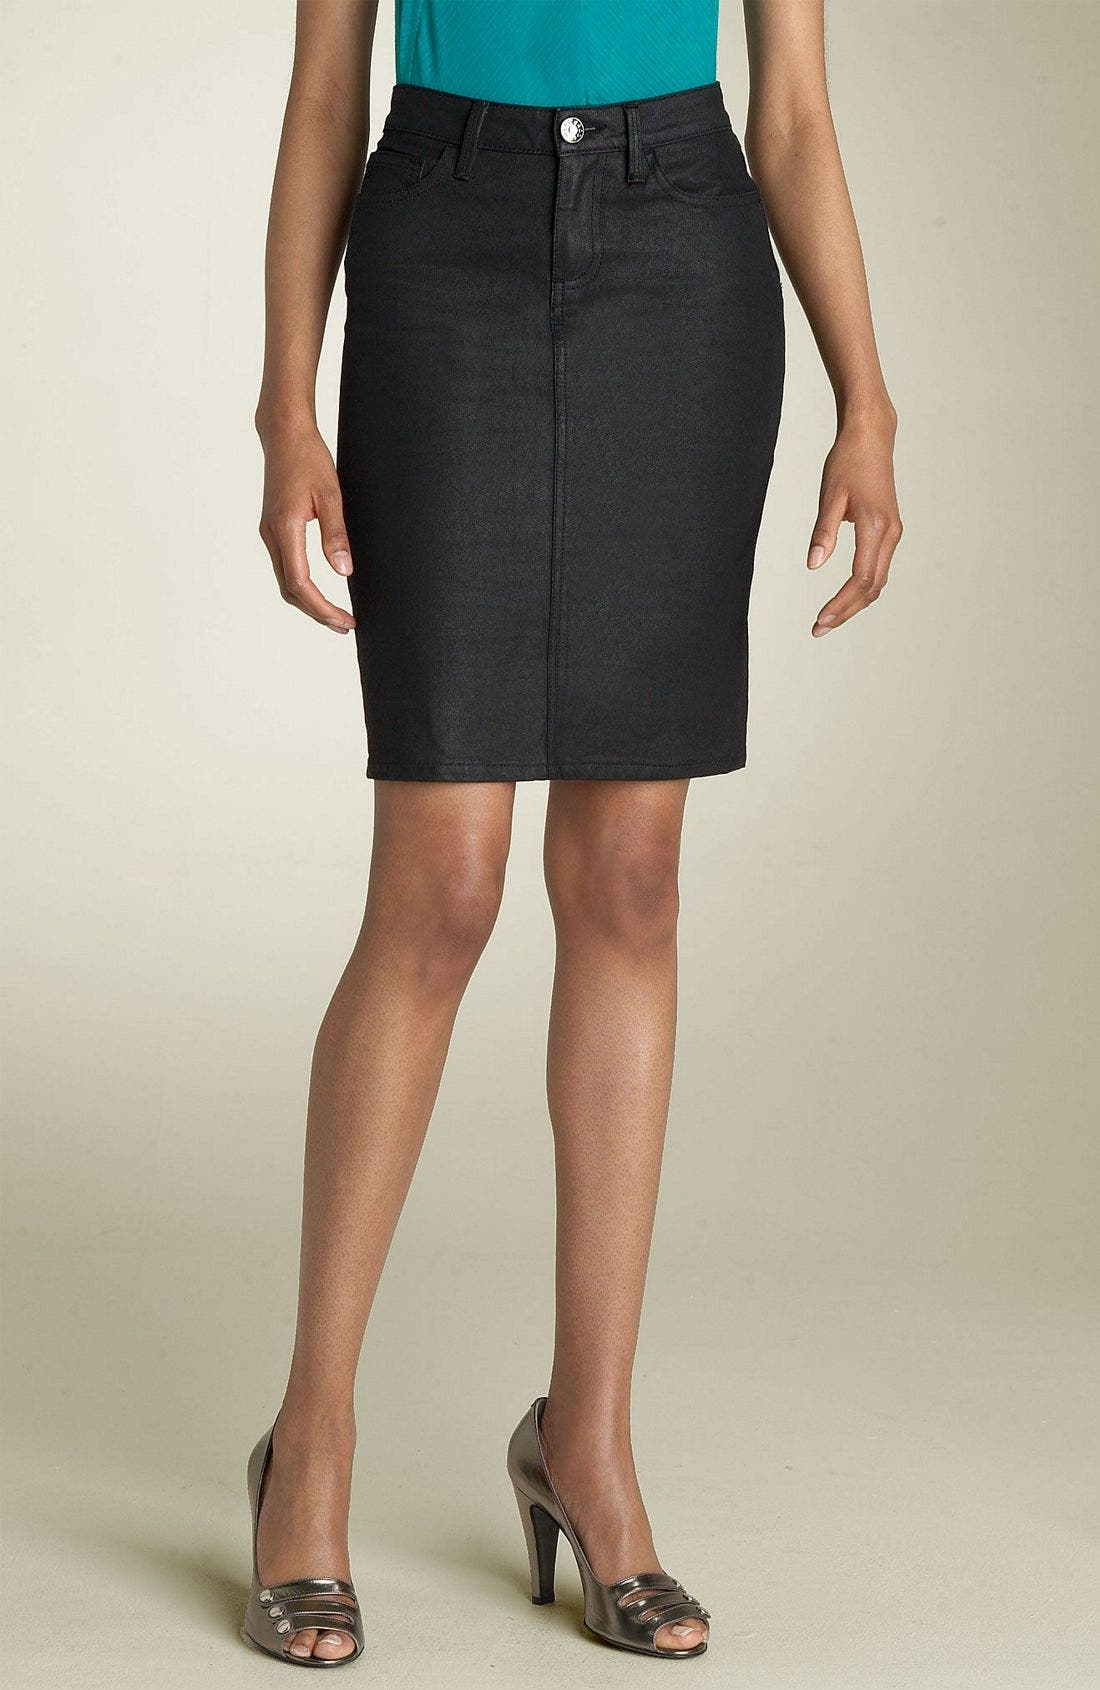 Alternate Image 1 Selected - MARC BY MARC JACOBS Denim Skirt (Black Coated)